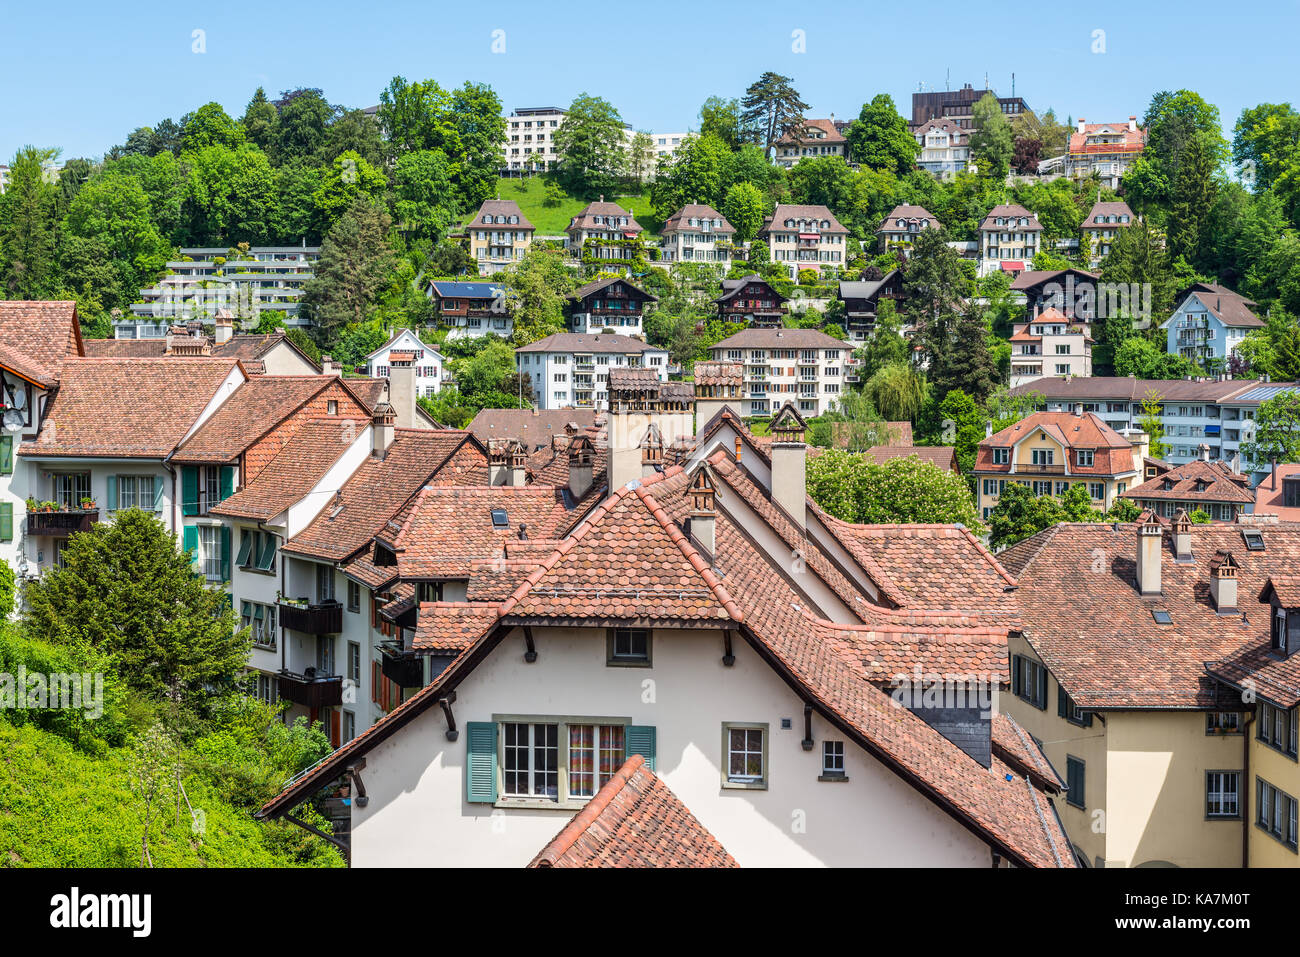 Bern, Switzerland - May 26, 2016: Architecture of the old European town and medieval tiled roof in Bern (Unesco Stock Photo